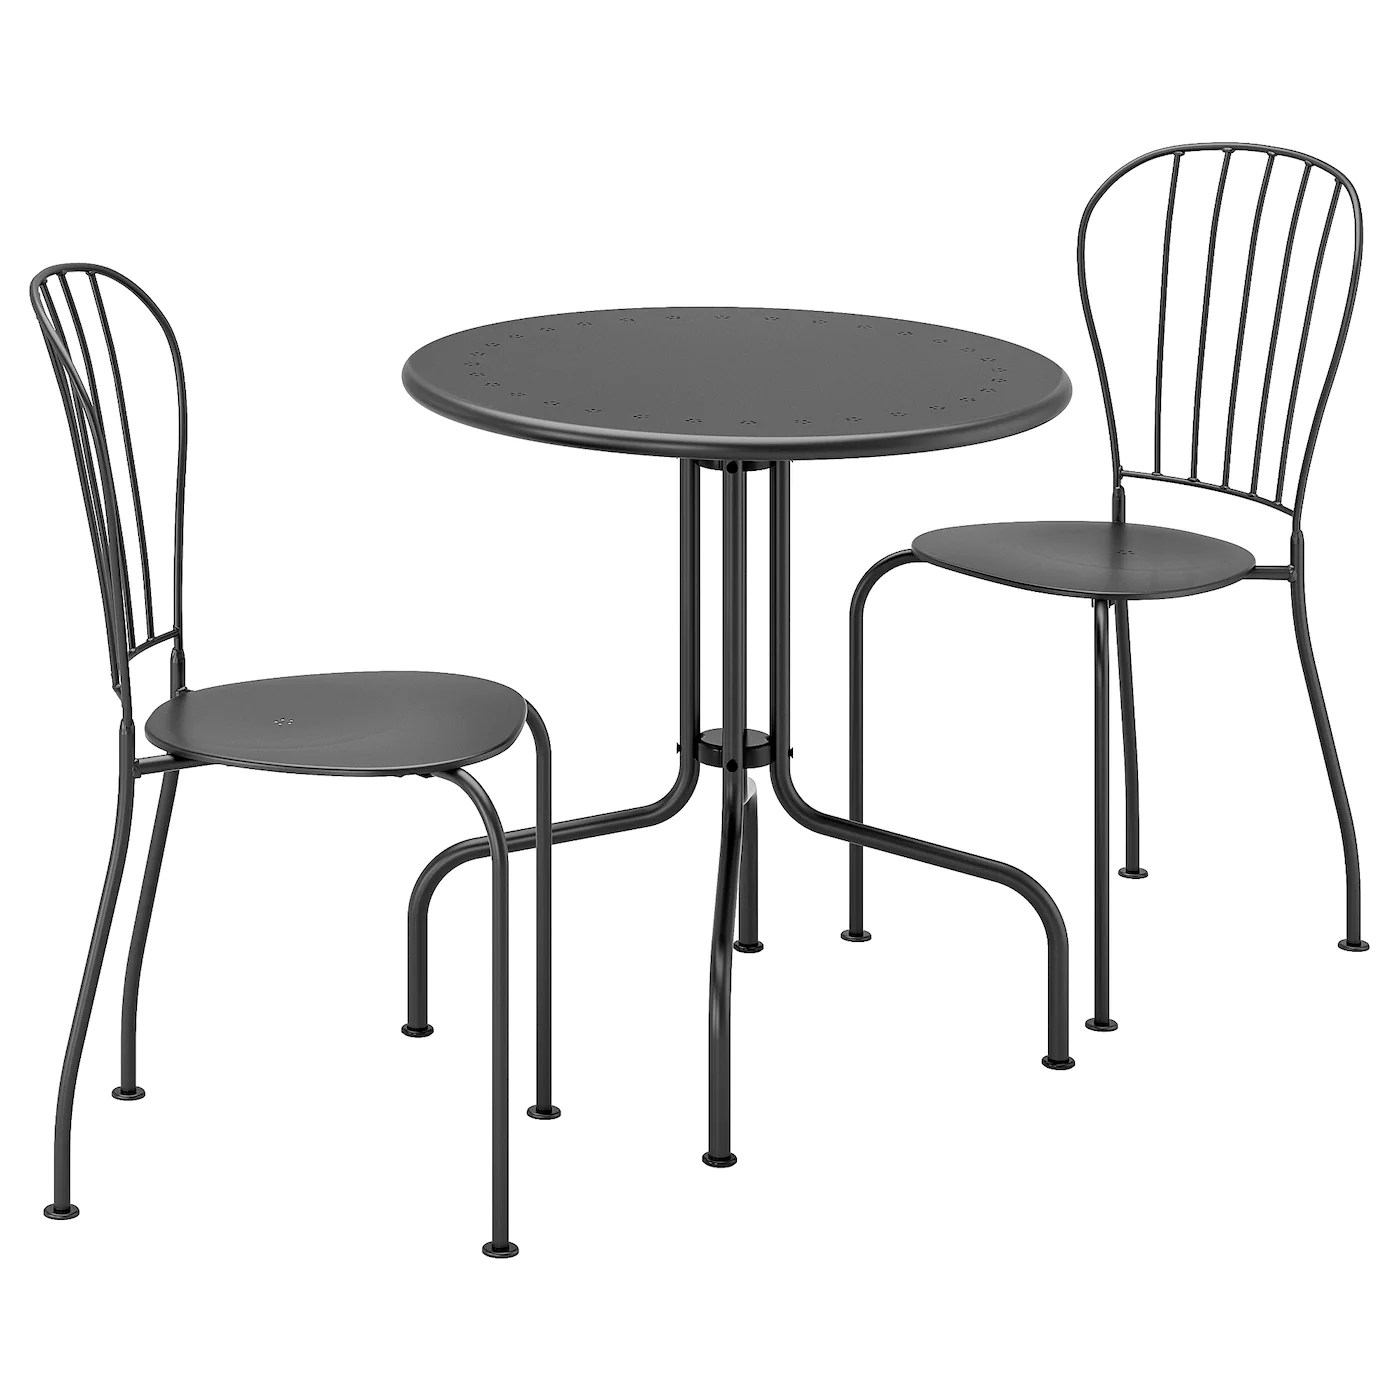 Lacko Table 2 Chairs Outdoor Gray Ikea